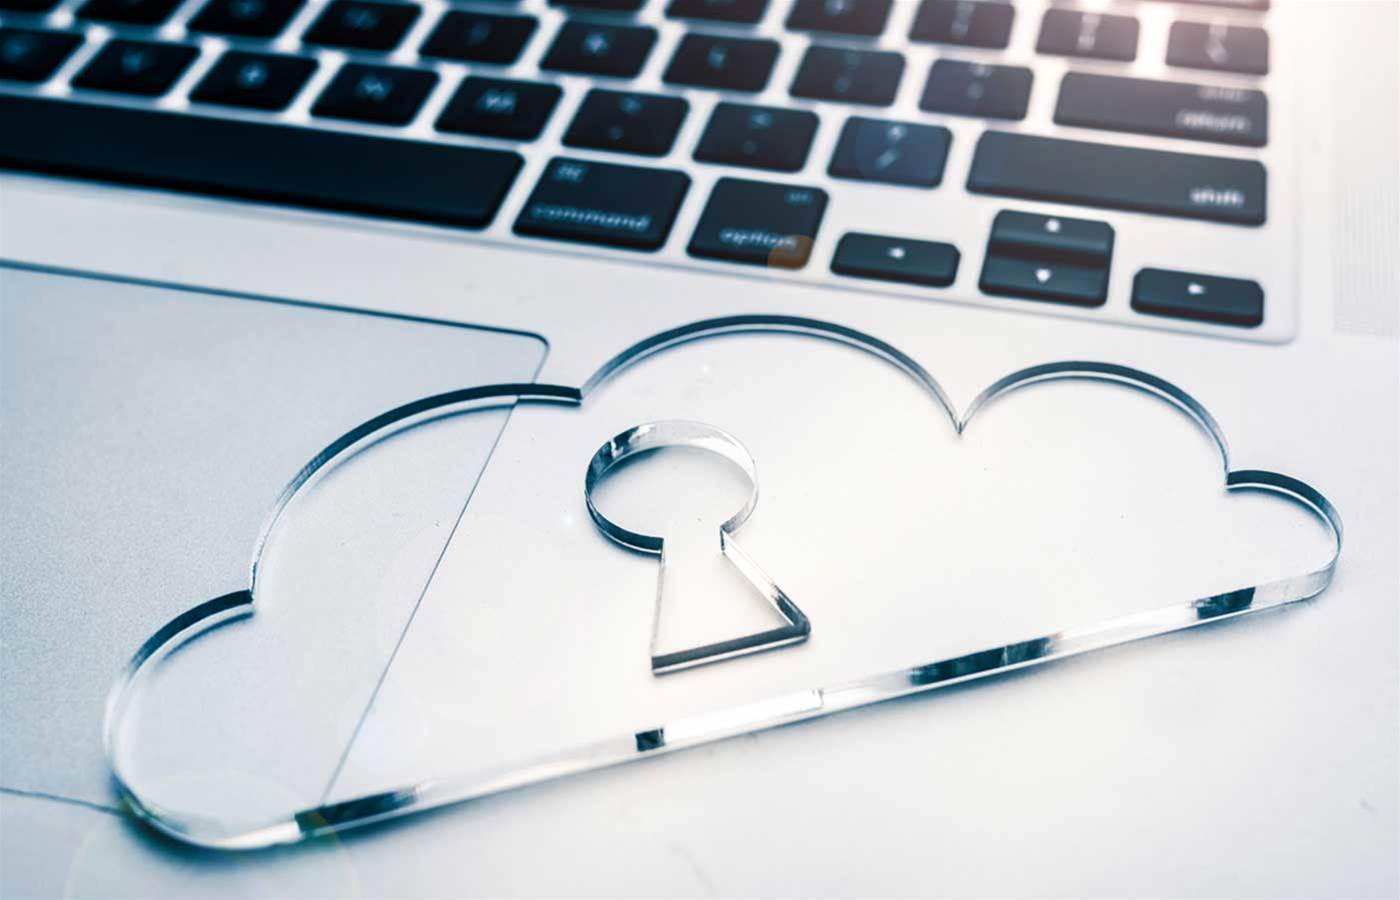 Microsoft's Australian cloud gets approved for highly classified data